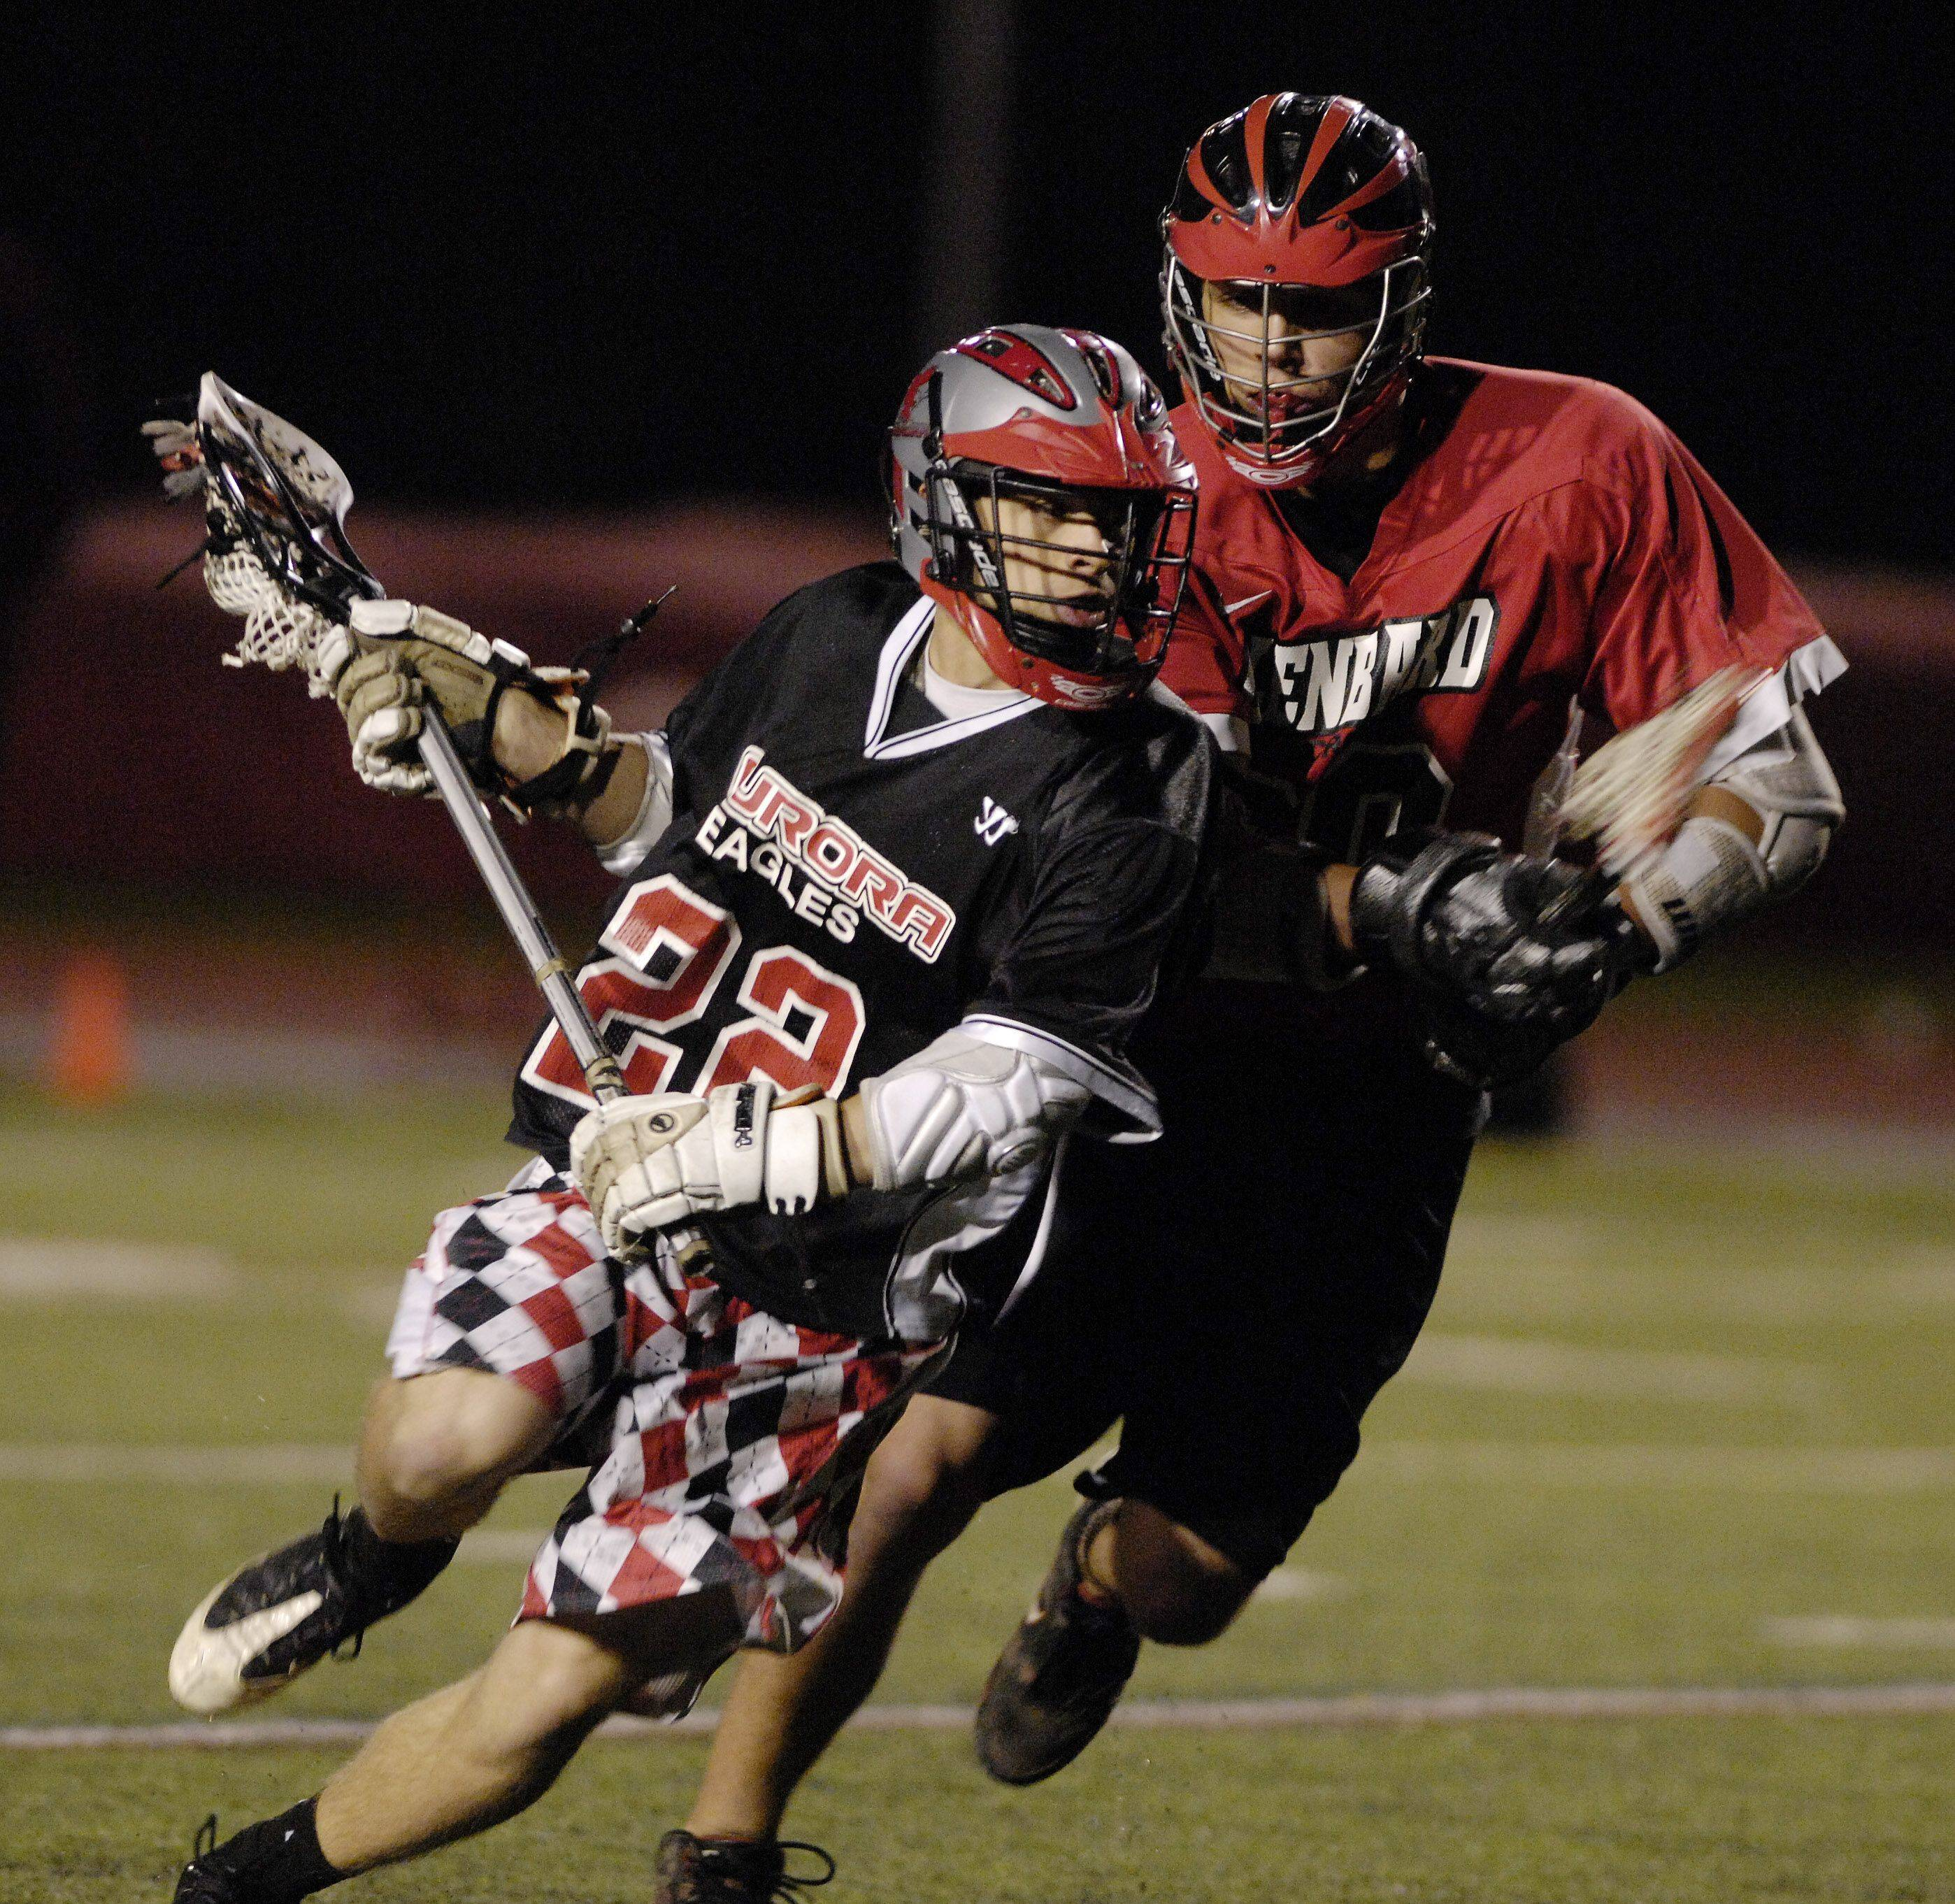 Justin Sienicki of Aurora Christian drives the ball down field as Brian Sanborn of Glenbard pursues, during a lacrosse match at Benedictine University in Lisle on Wednesday April 17th, 2011.